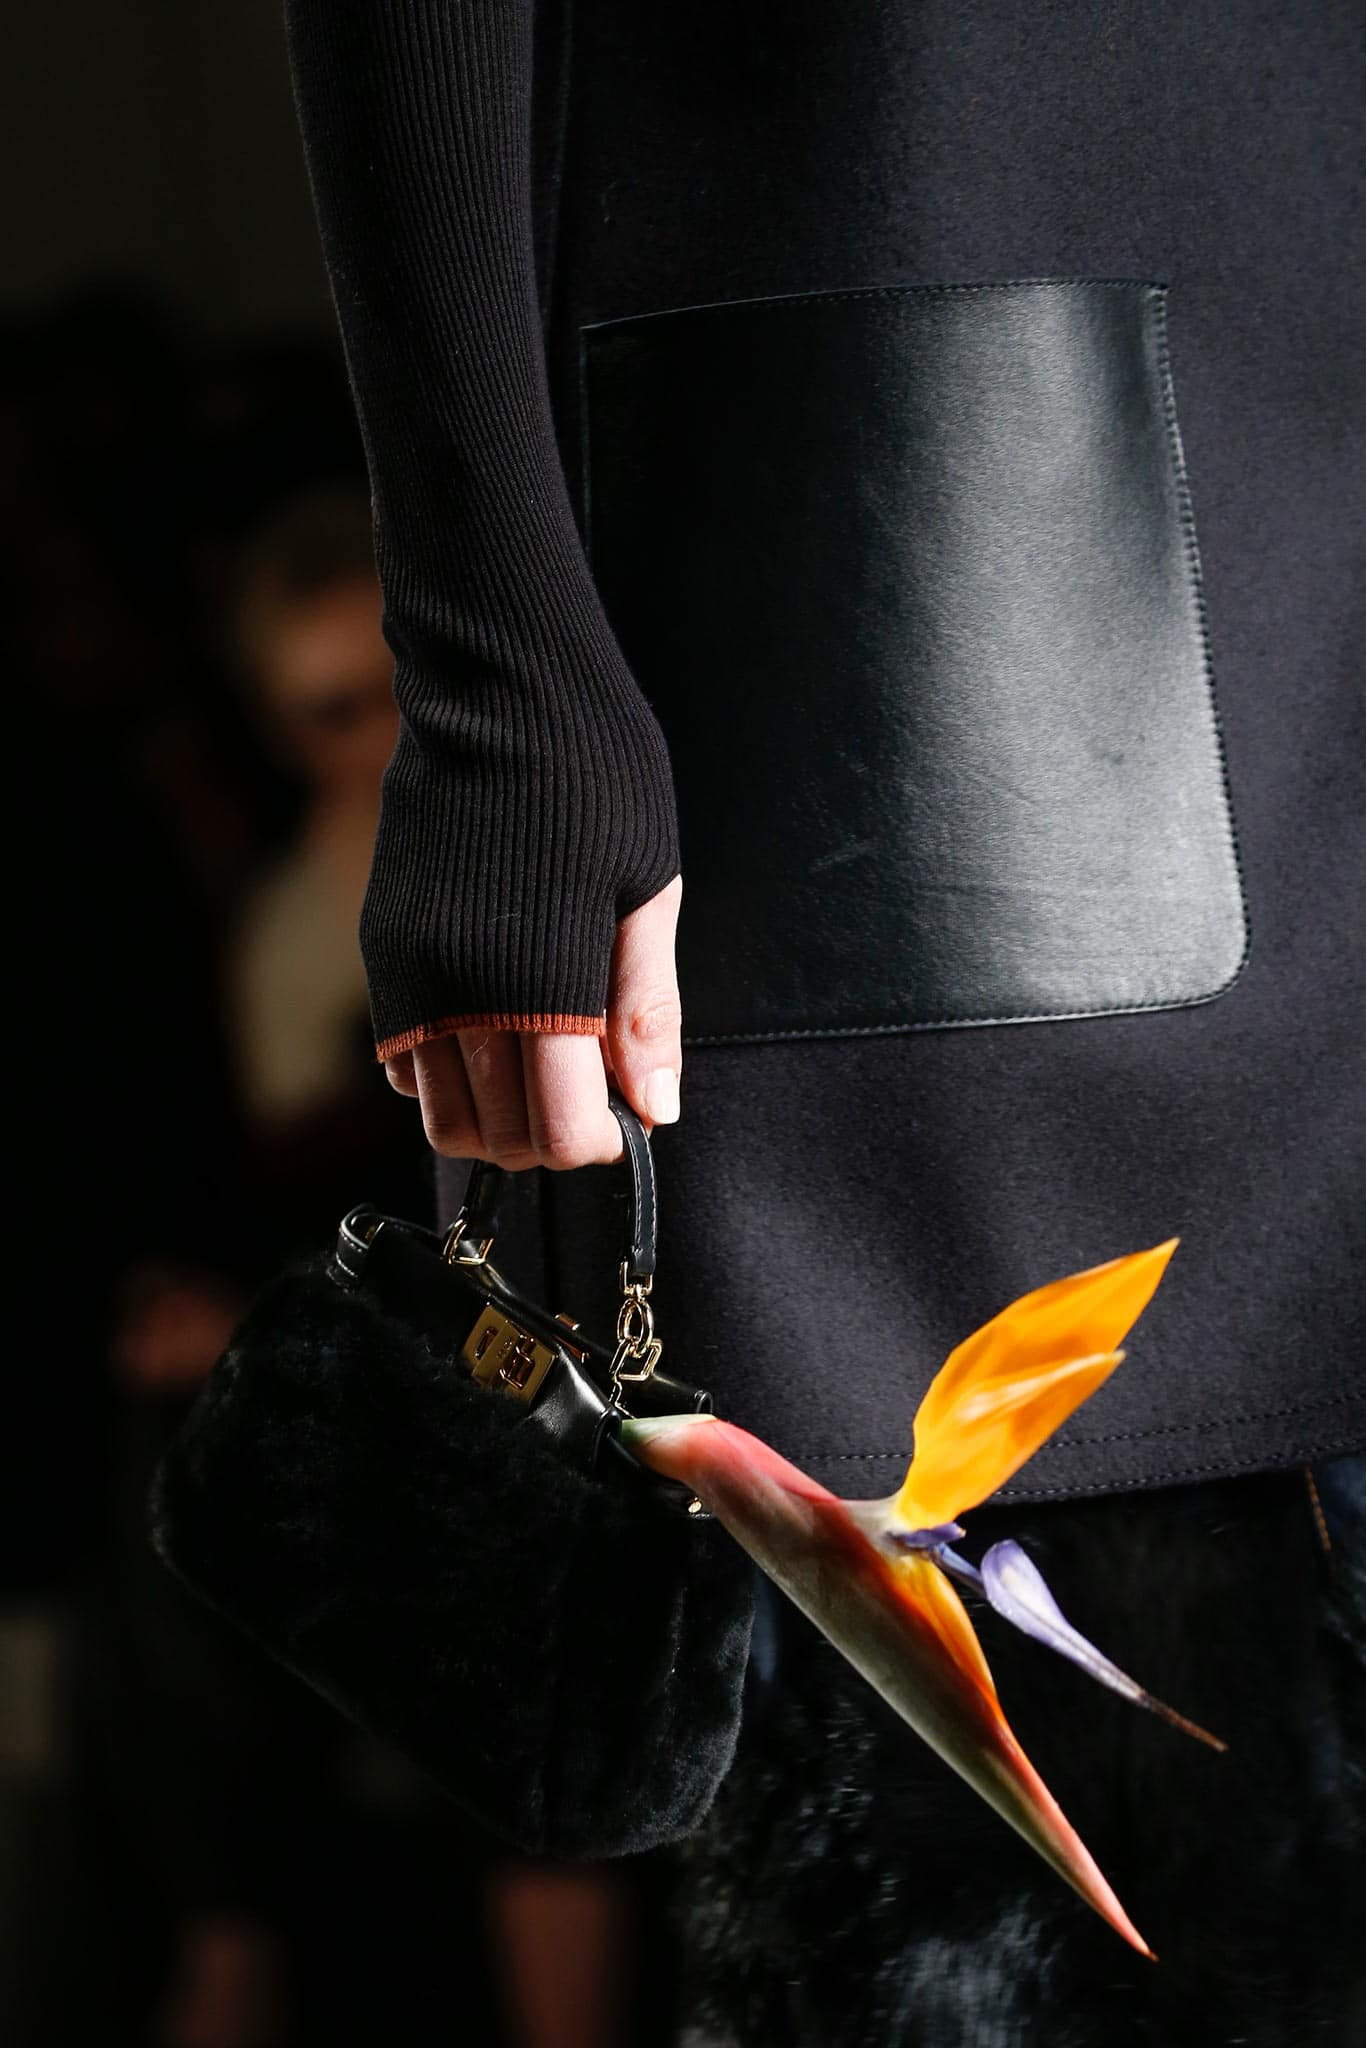 Fendi spring summer 2015 runway bag collection spotted fashion - Fendi Black Fur Peekaboo Micro Bag Fall 2015 Runway